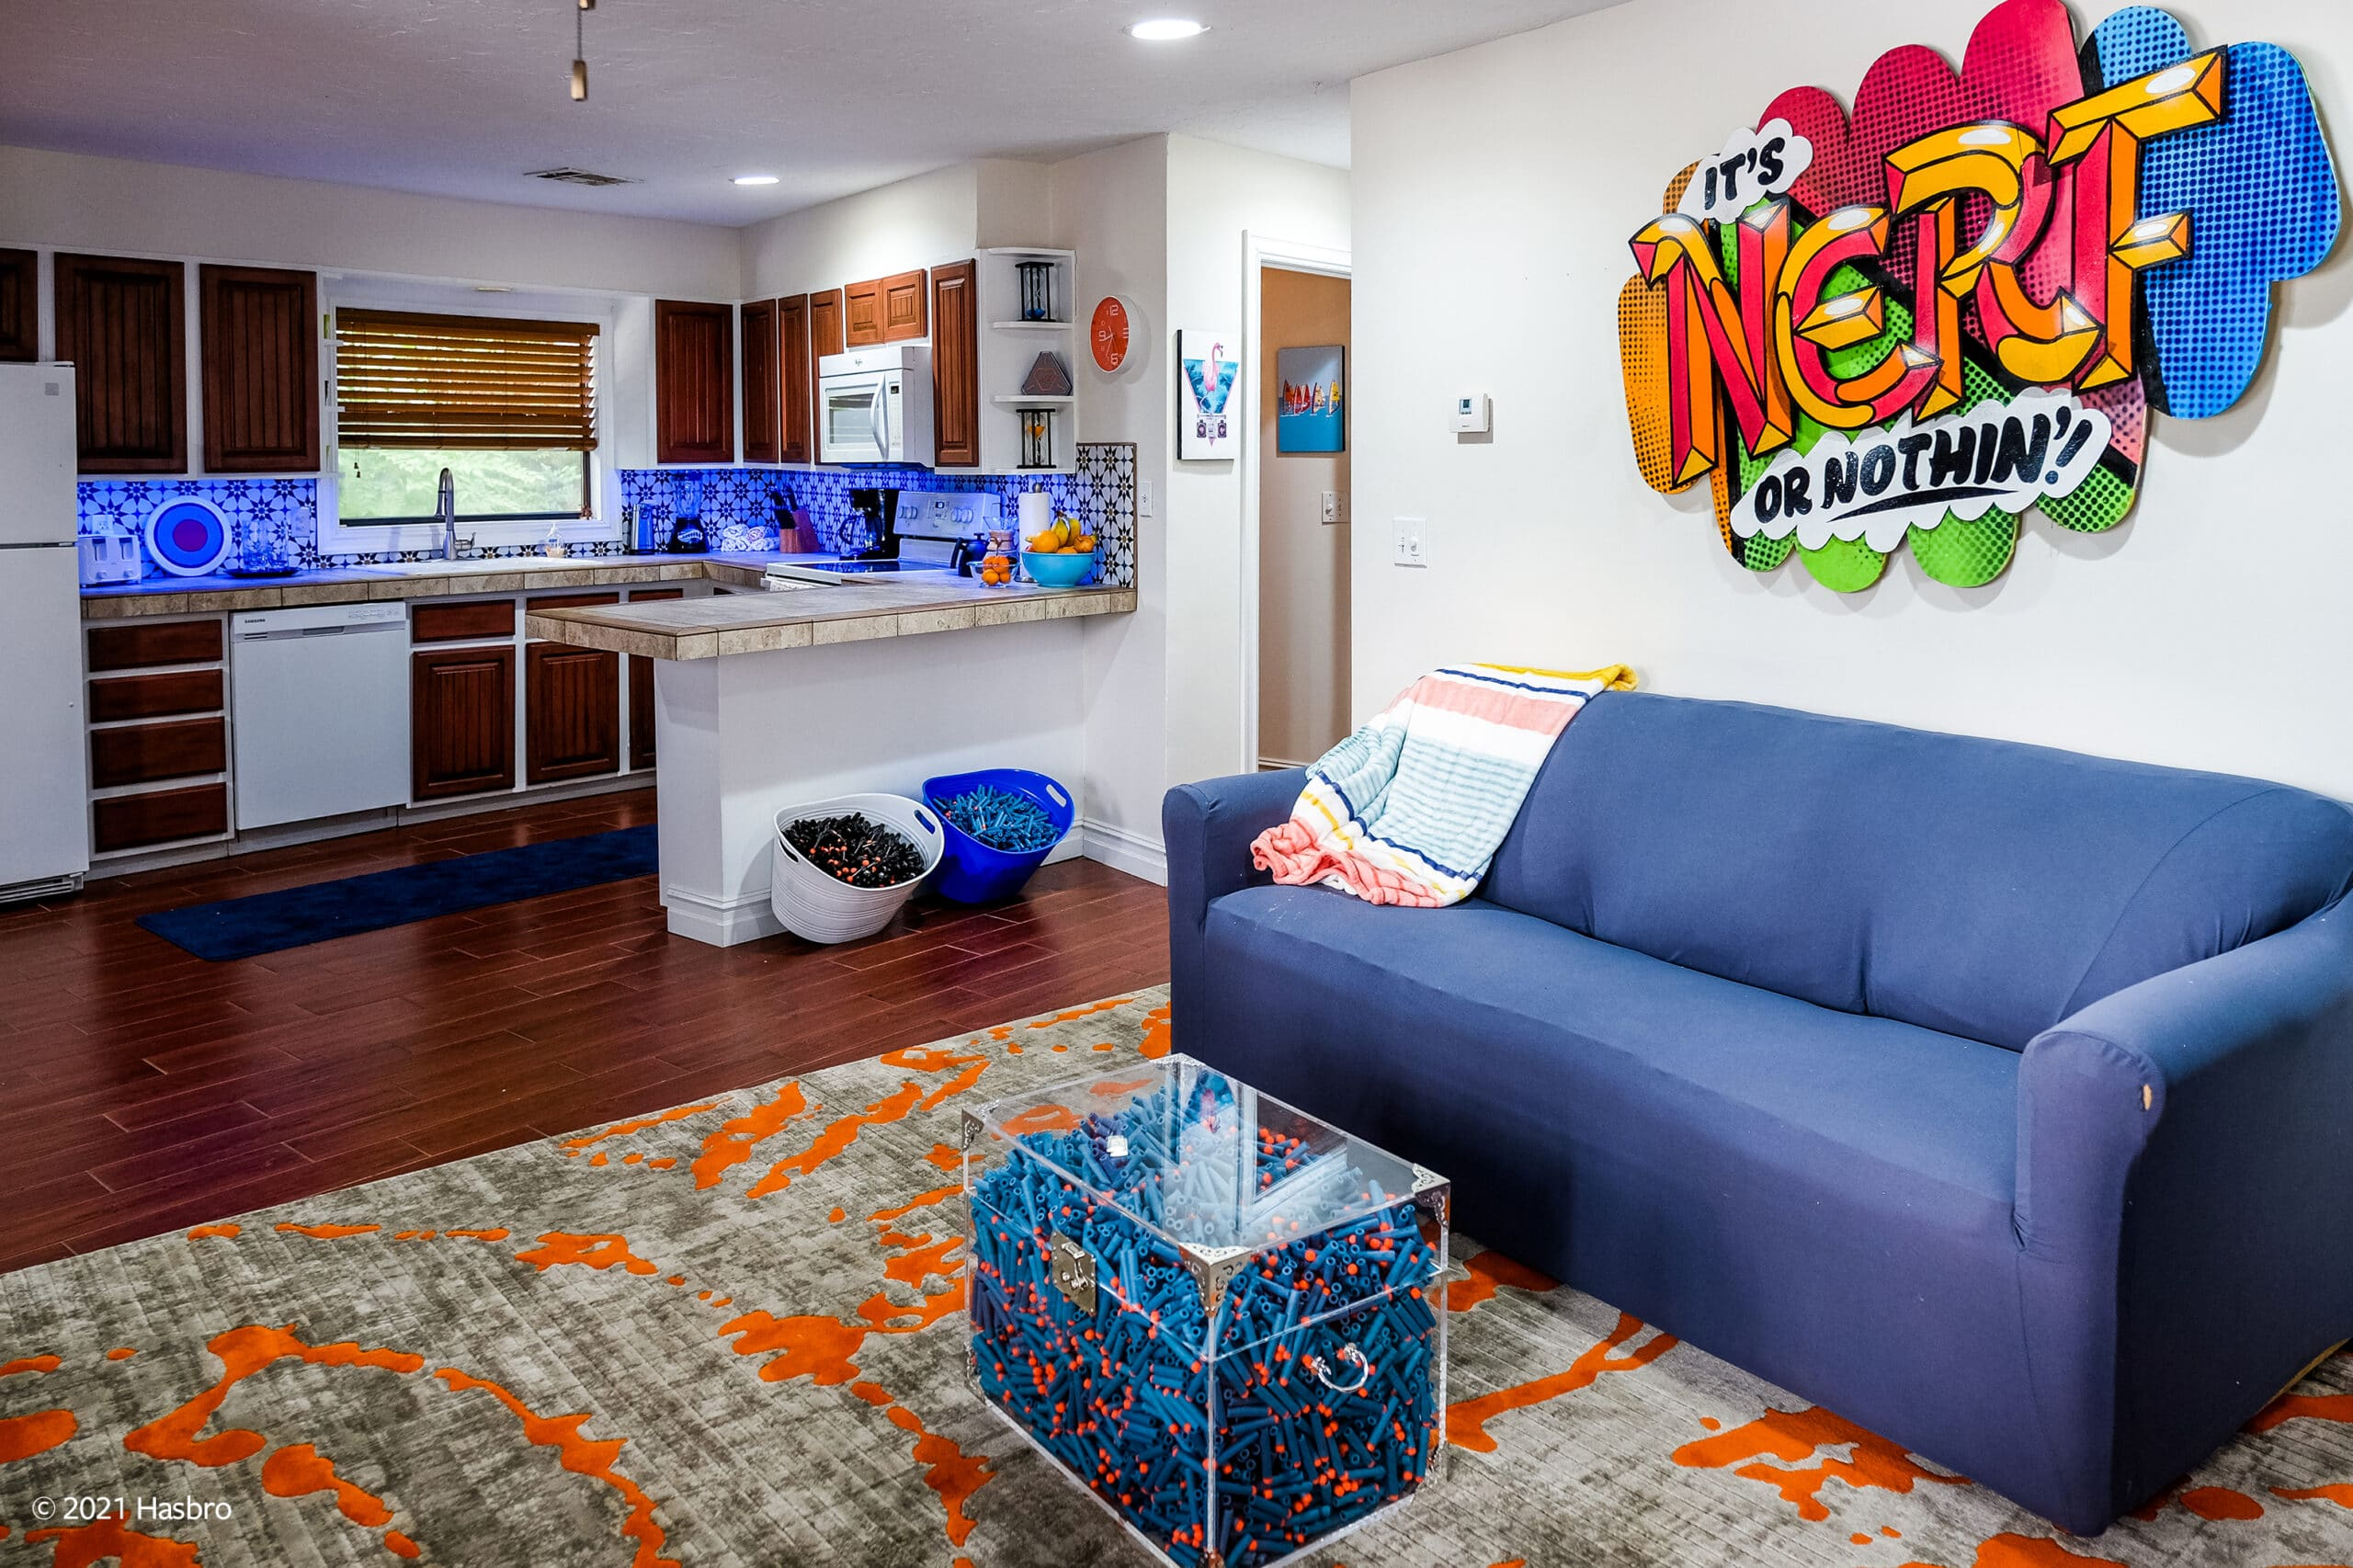 Hasbro and Vrbo are renting out a Nerf-themed lake house to one lucky family 23